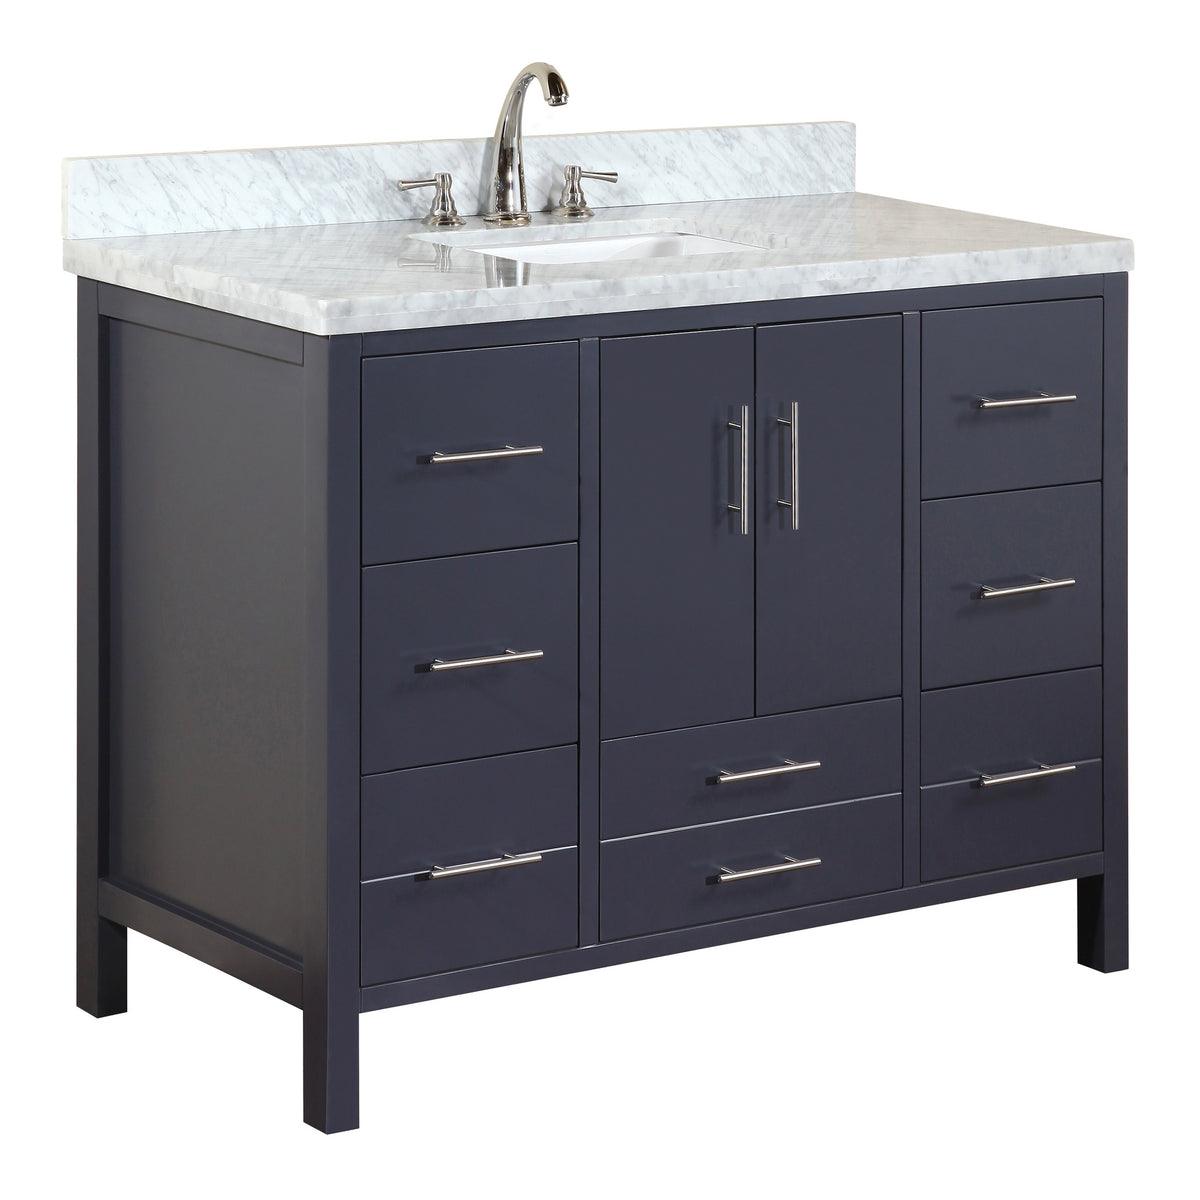 California 48 Inch Vanity Carrara Charcoal Gray